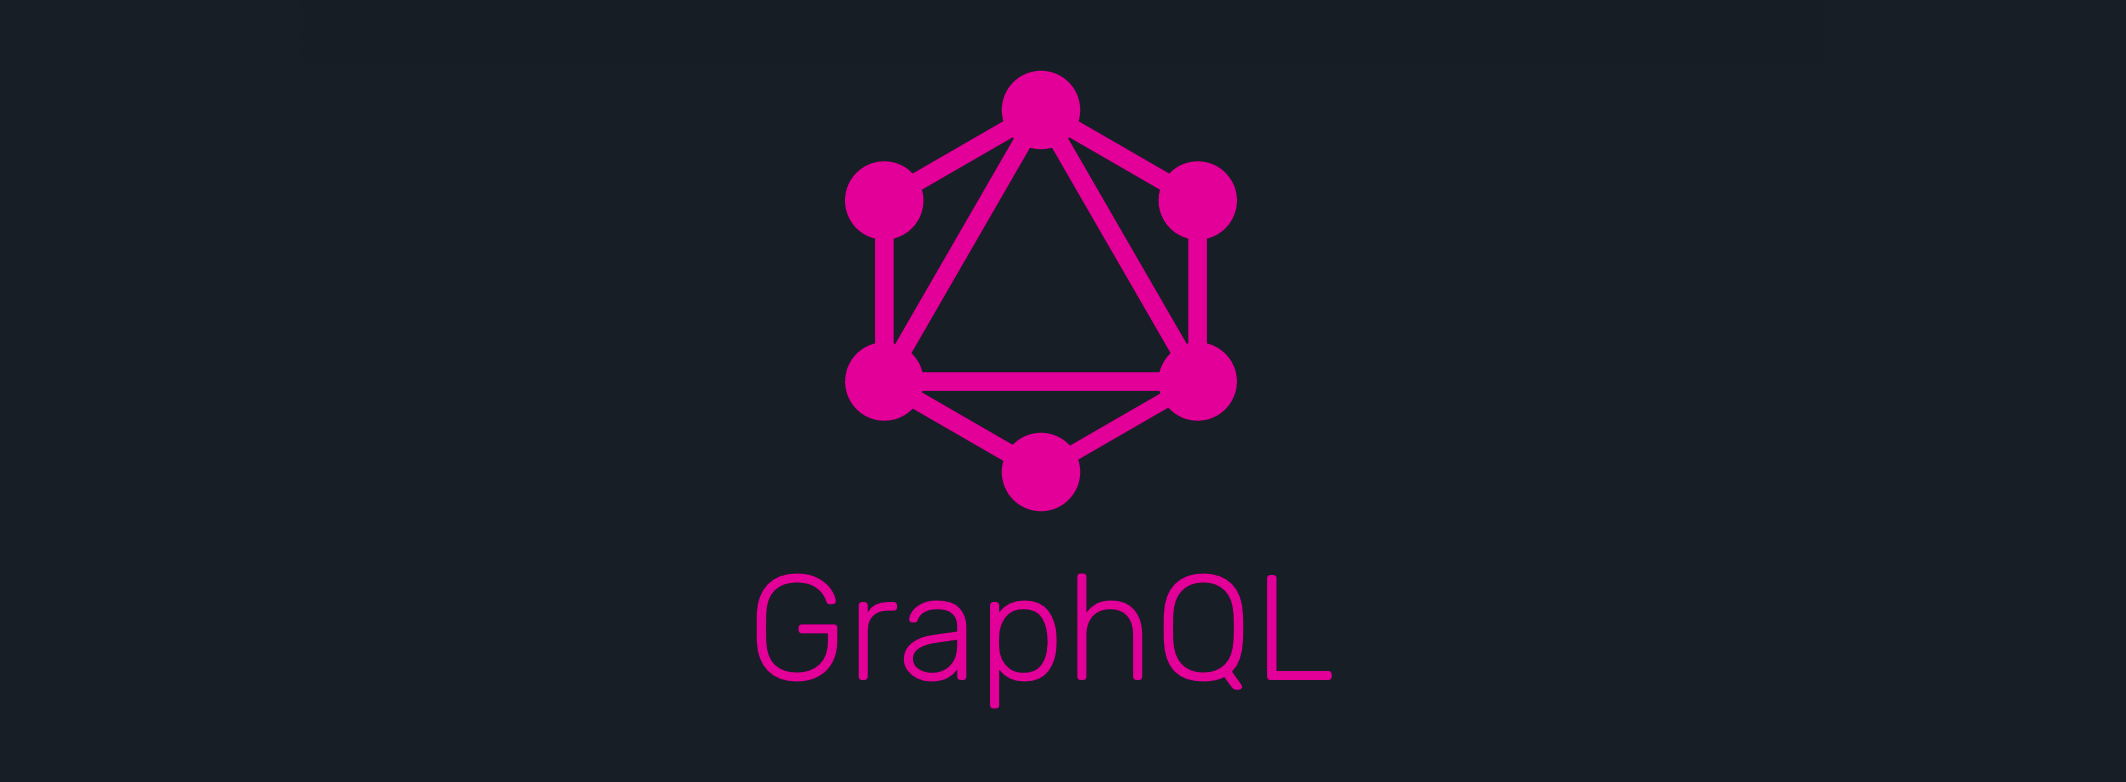 Getting started with Apollo GraphQL and React